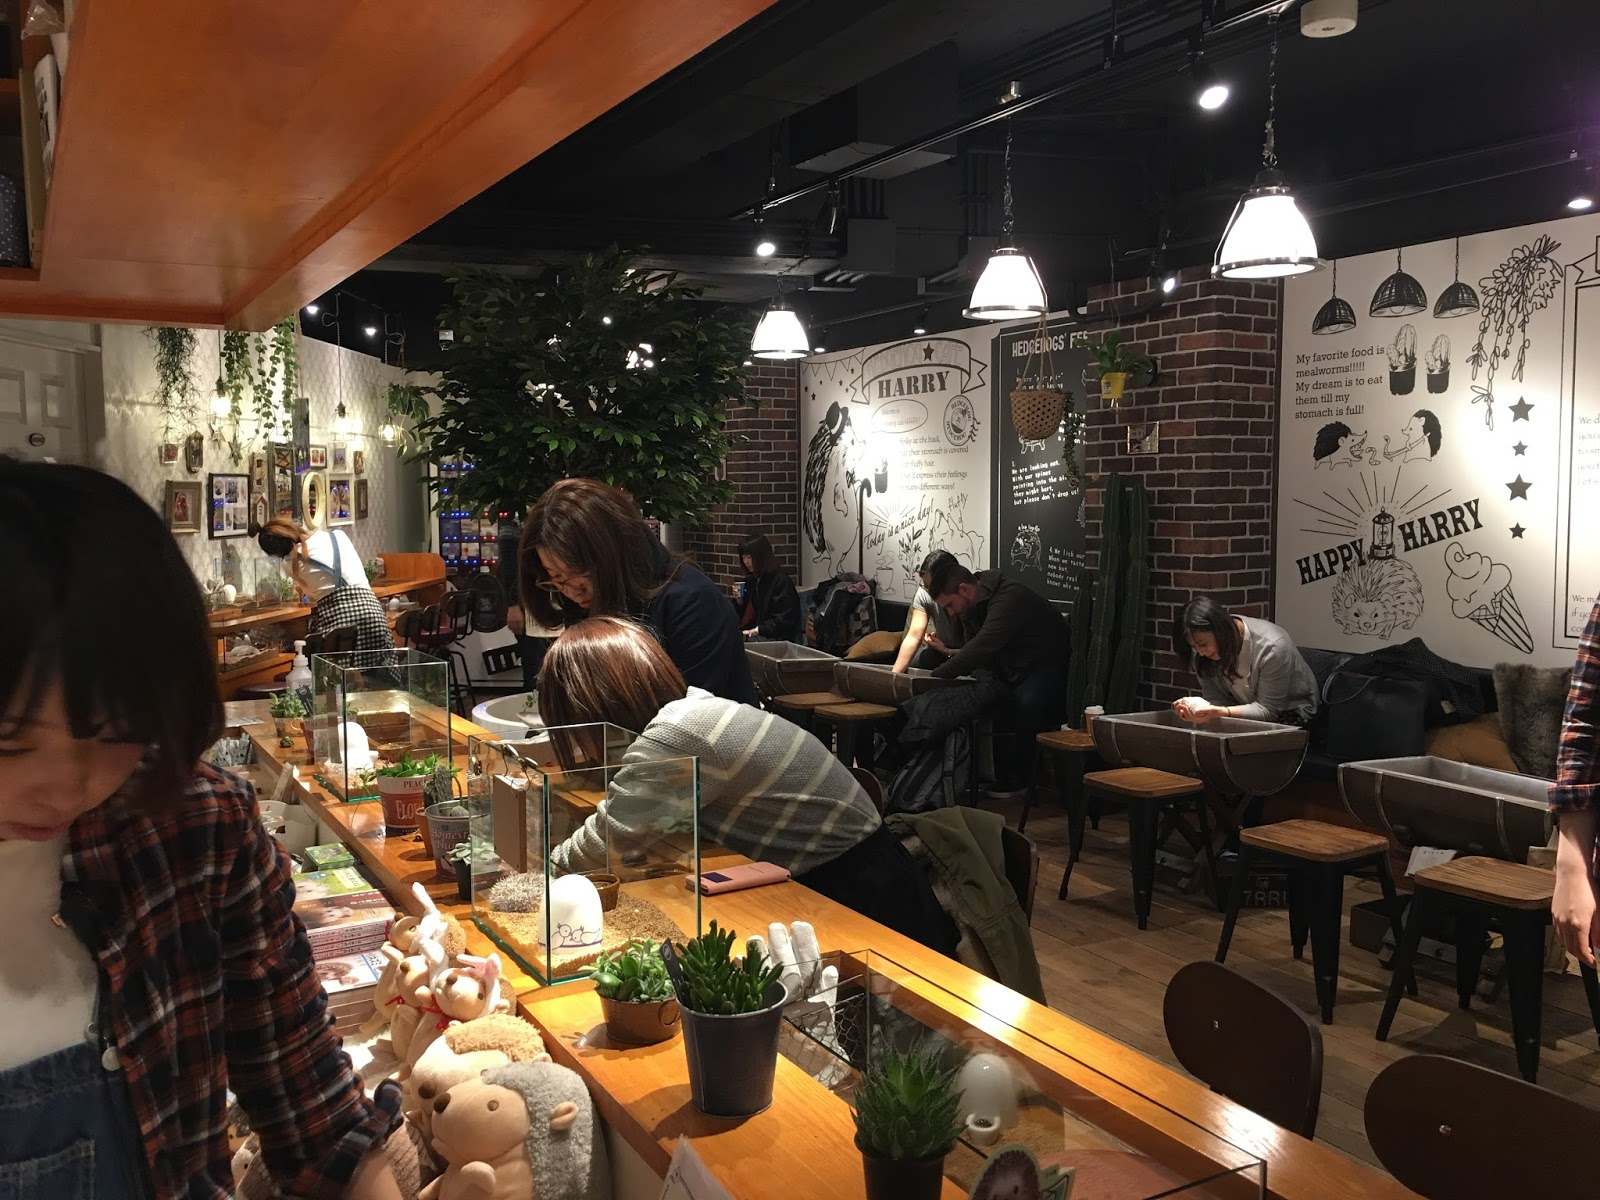 Cucina Amorosa Warehouse Import Taste Of Hawaii Hedgehog Cafe Tokyo Japan